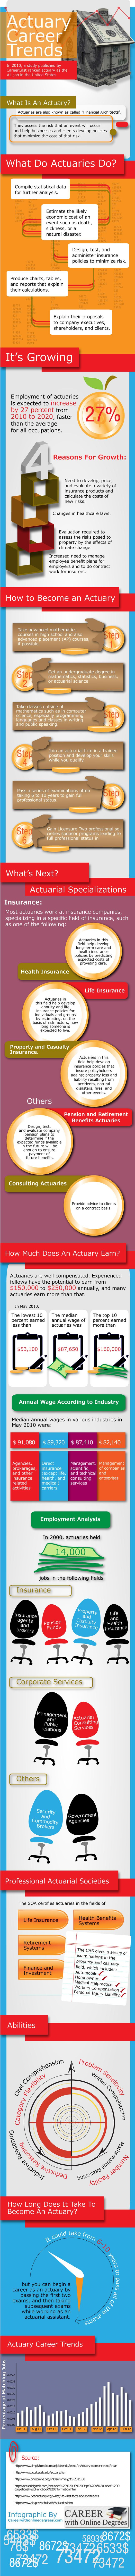 What would you say would be better for pursuiting a career as an Actuary?